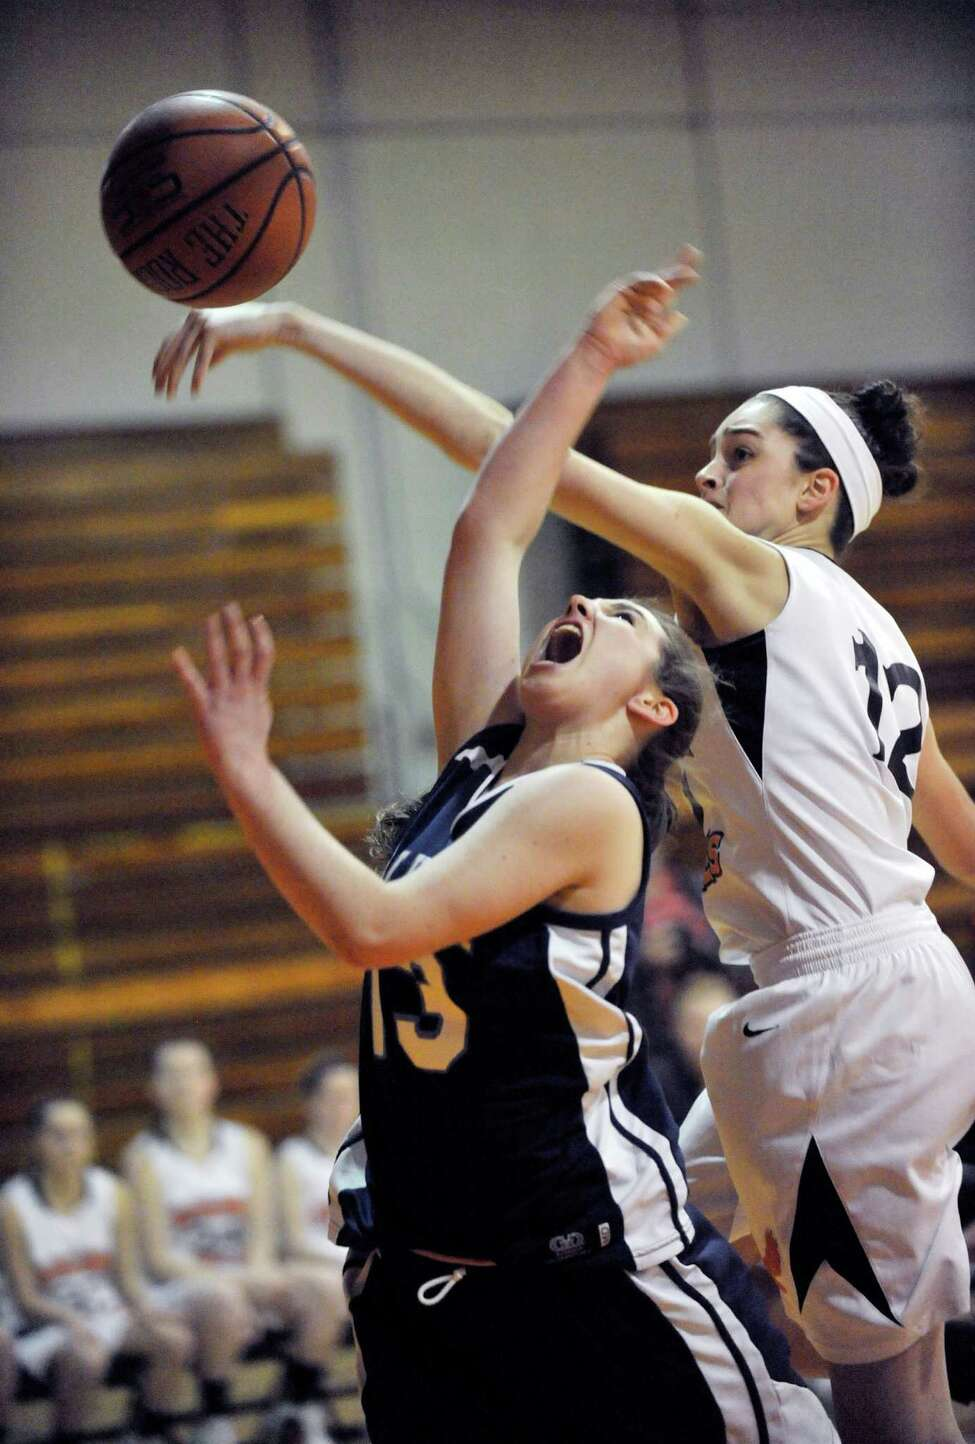 Columbia's Sarah Jaromin ,left, is defended by Bethlehem's Jenna Giacone during their girls' basketballl game in Delmar, N.Y., Friday, Jan. 10, 2014. (Hans Pennink / Special to the Times Union) ORG XMIT: HP101